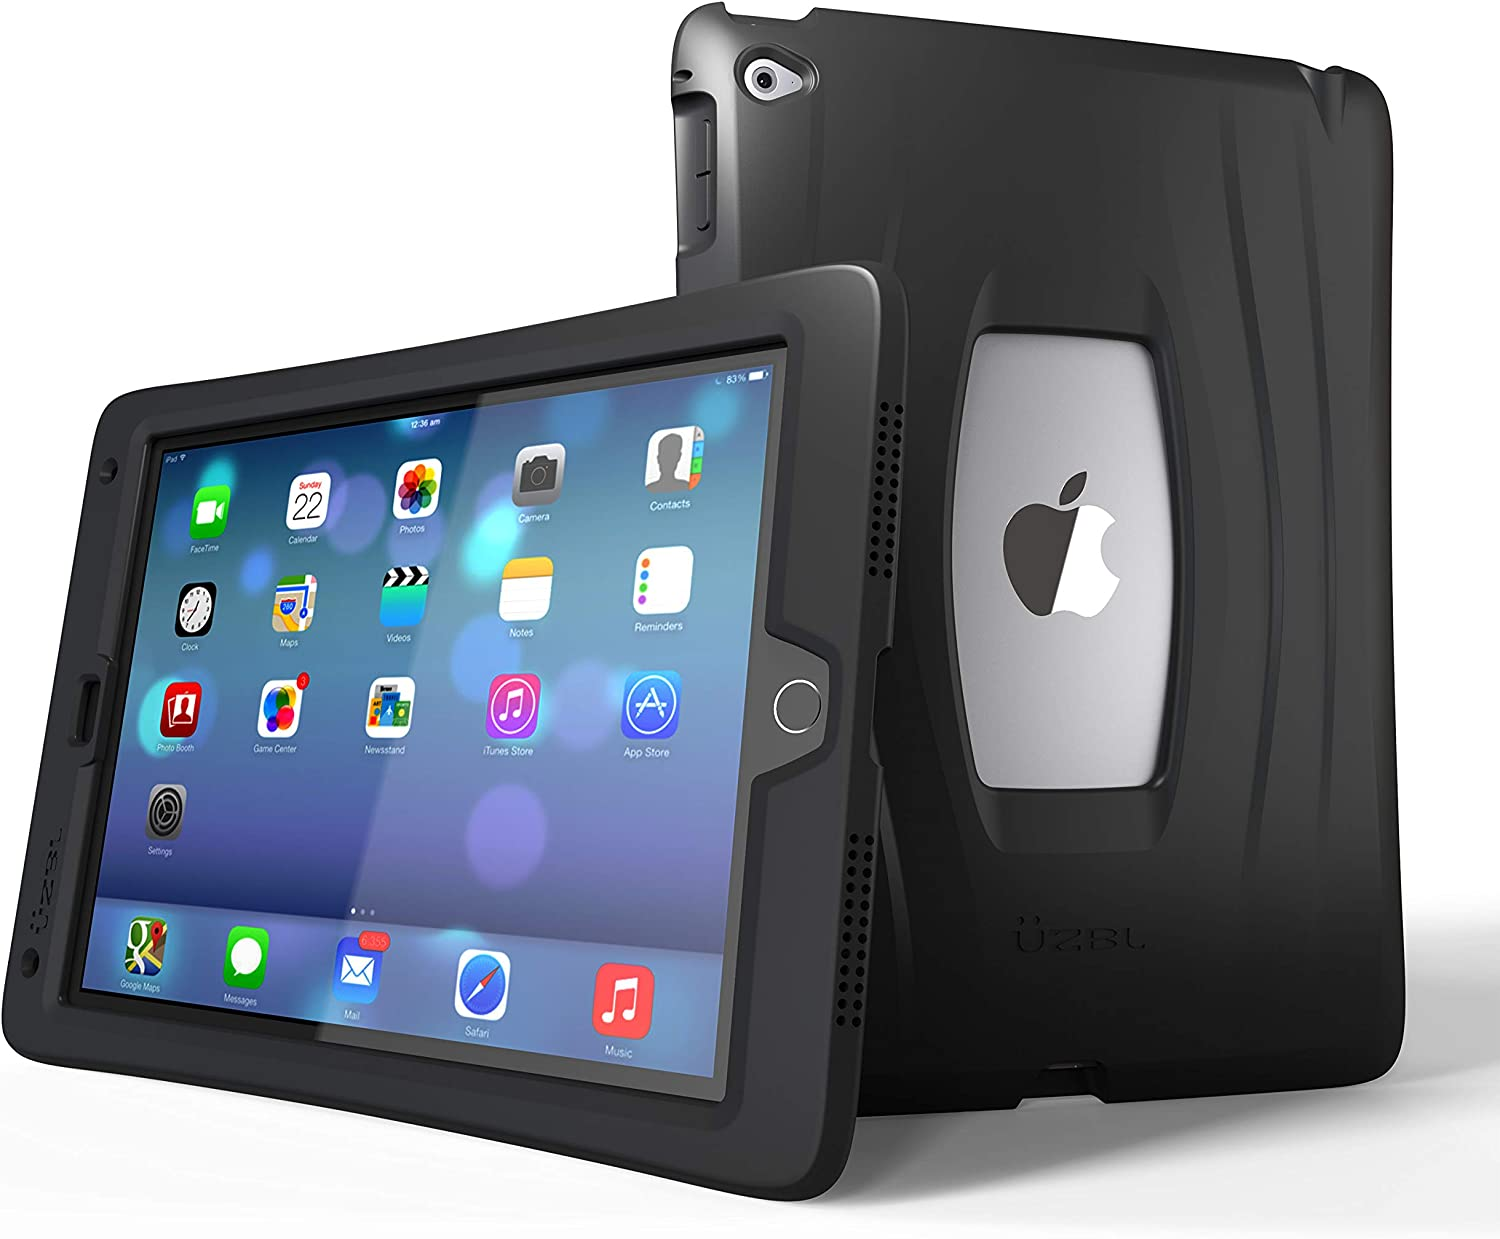 UZBL iPad Mini 5 2019 Case, AirWave Slim Lightweight Heavy Duty 1-Piece Silicone Case with Air Cell Drop Protection, for Apple iPad Mini 5th Generation, Midnight Black